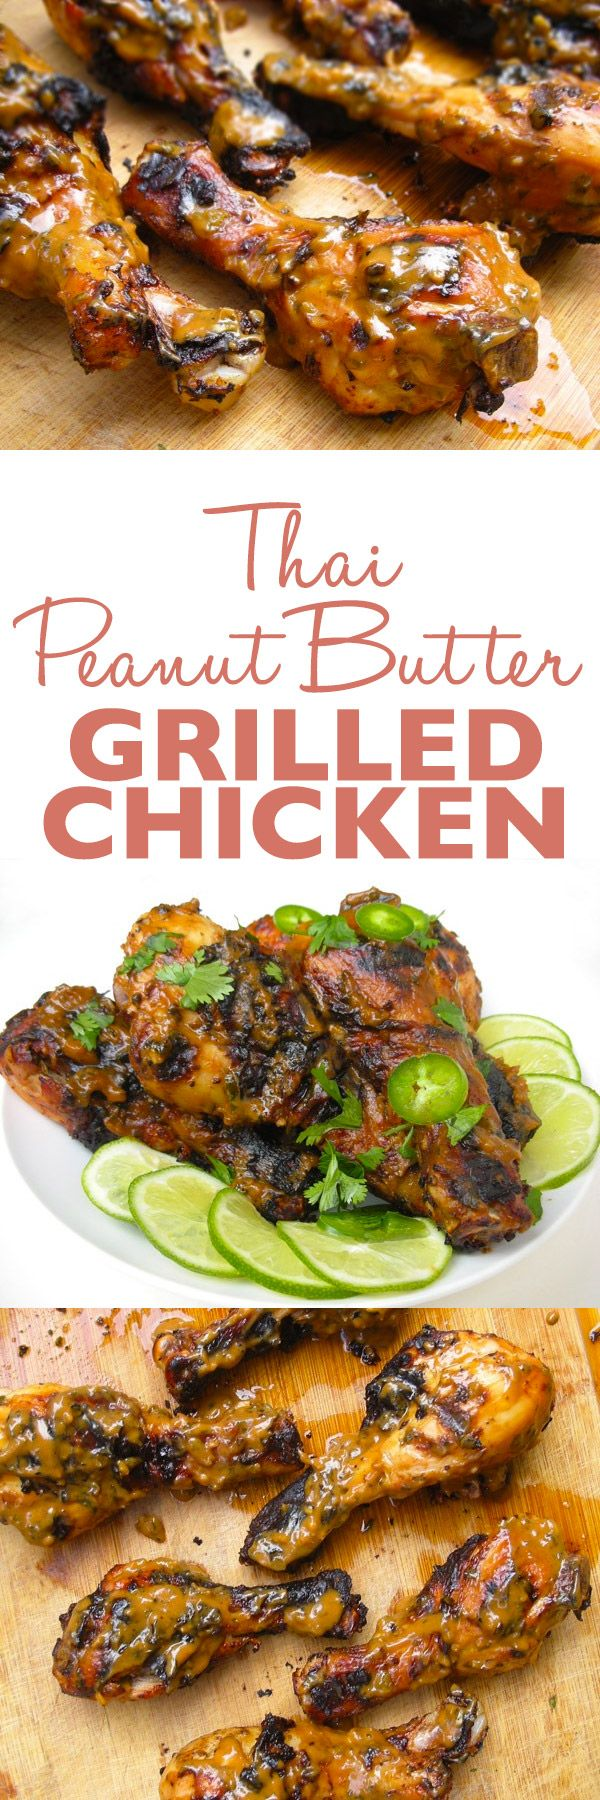 Thai Peanut Butter Grilled Chicken Recipe - Chicken drumsticks are seasoned with a Thai peanut butter marinade, grilled, and then finished with a thick, slightly sweet sauce. (Chicken Drumsticks)